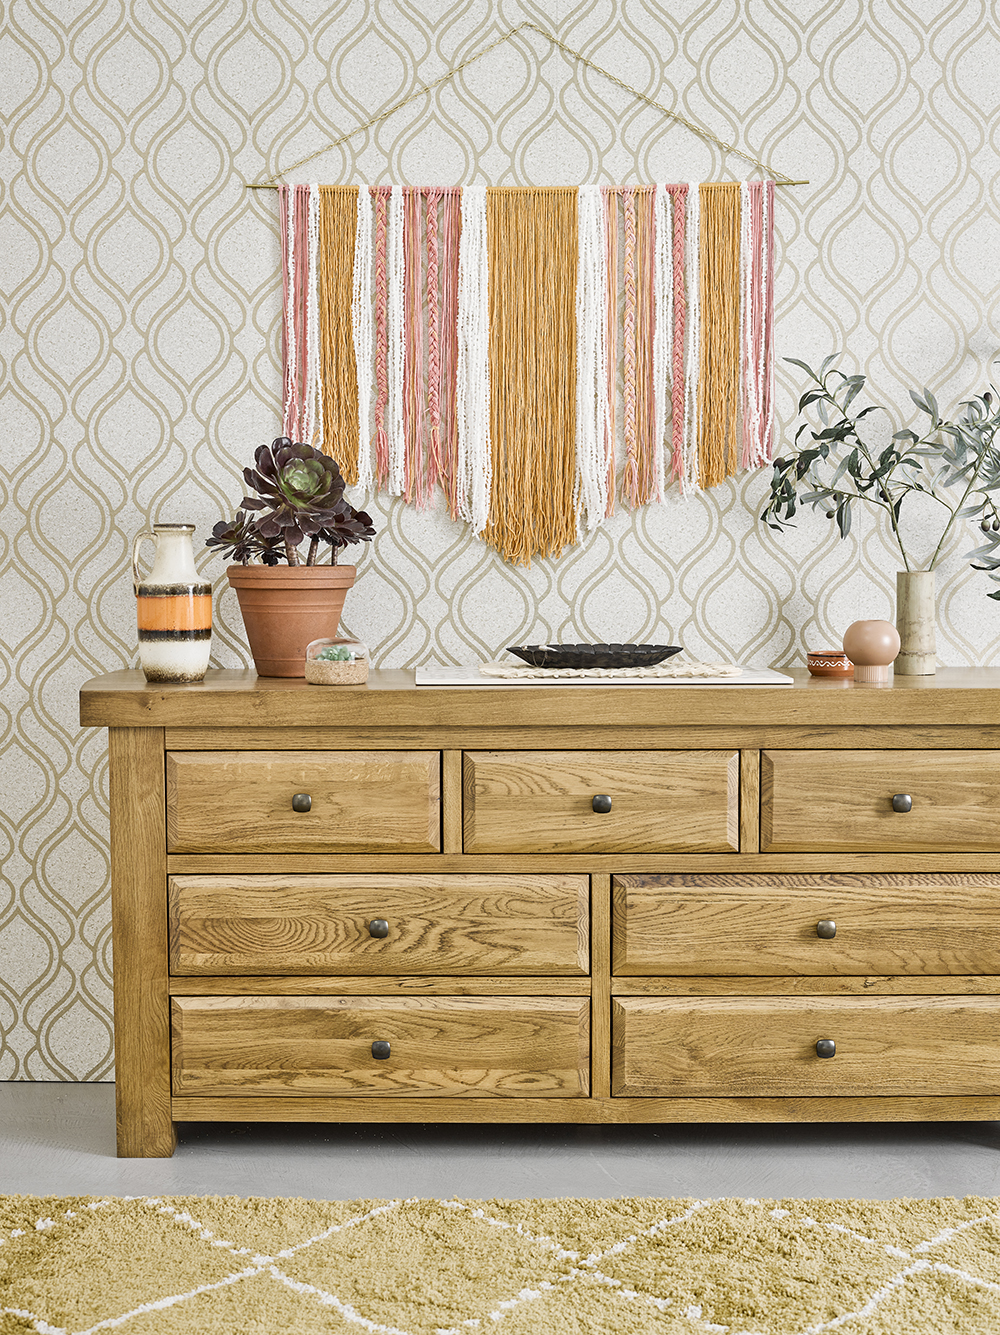 Oak chest of drawers with peach and yellow accessories